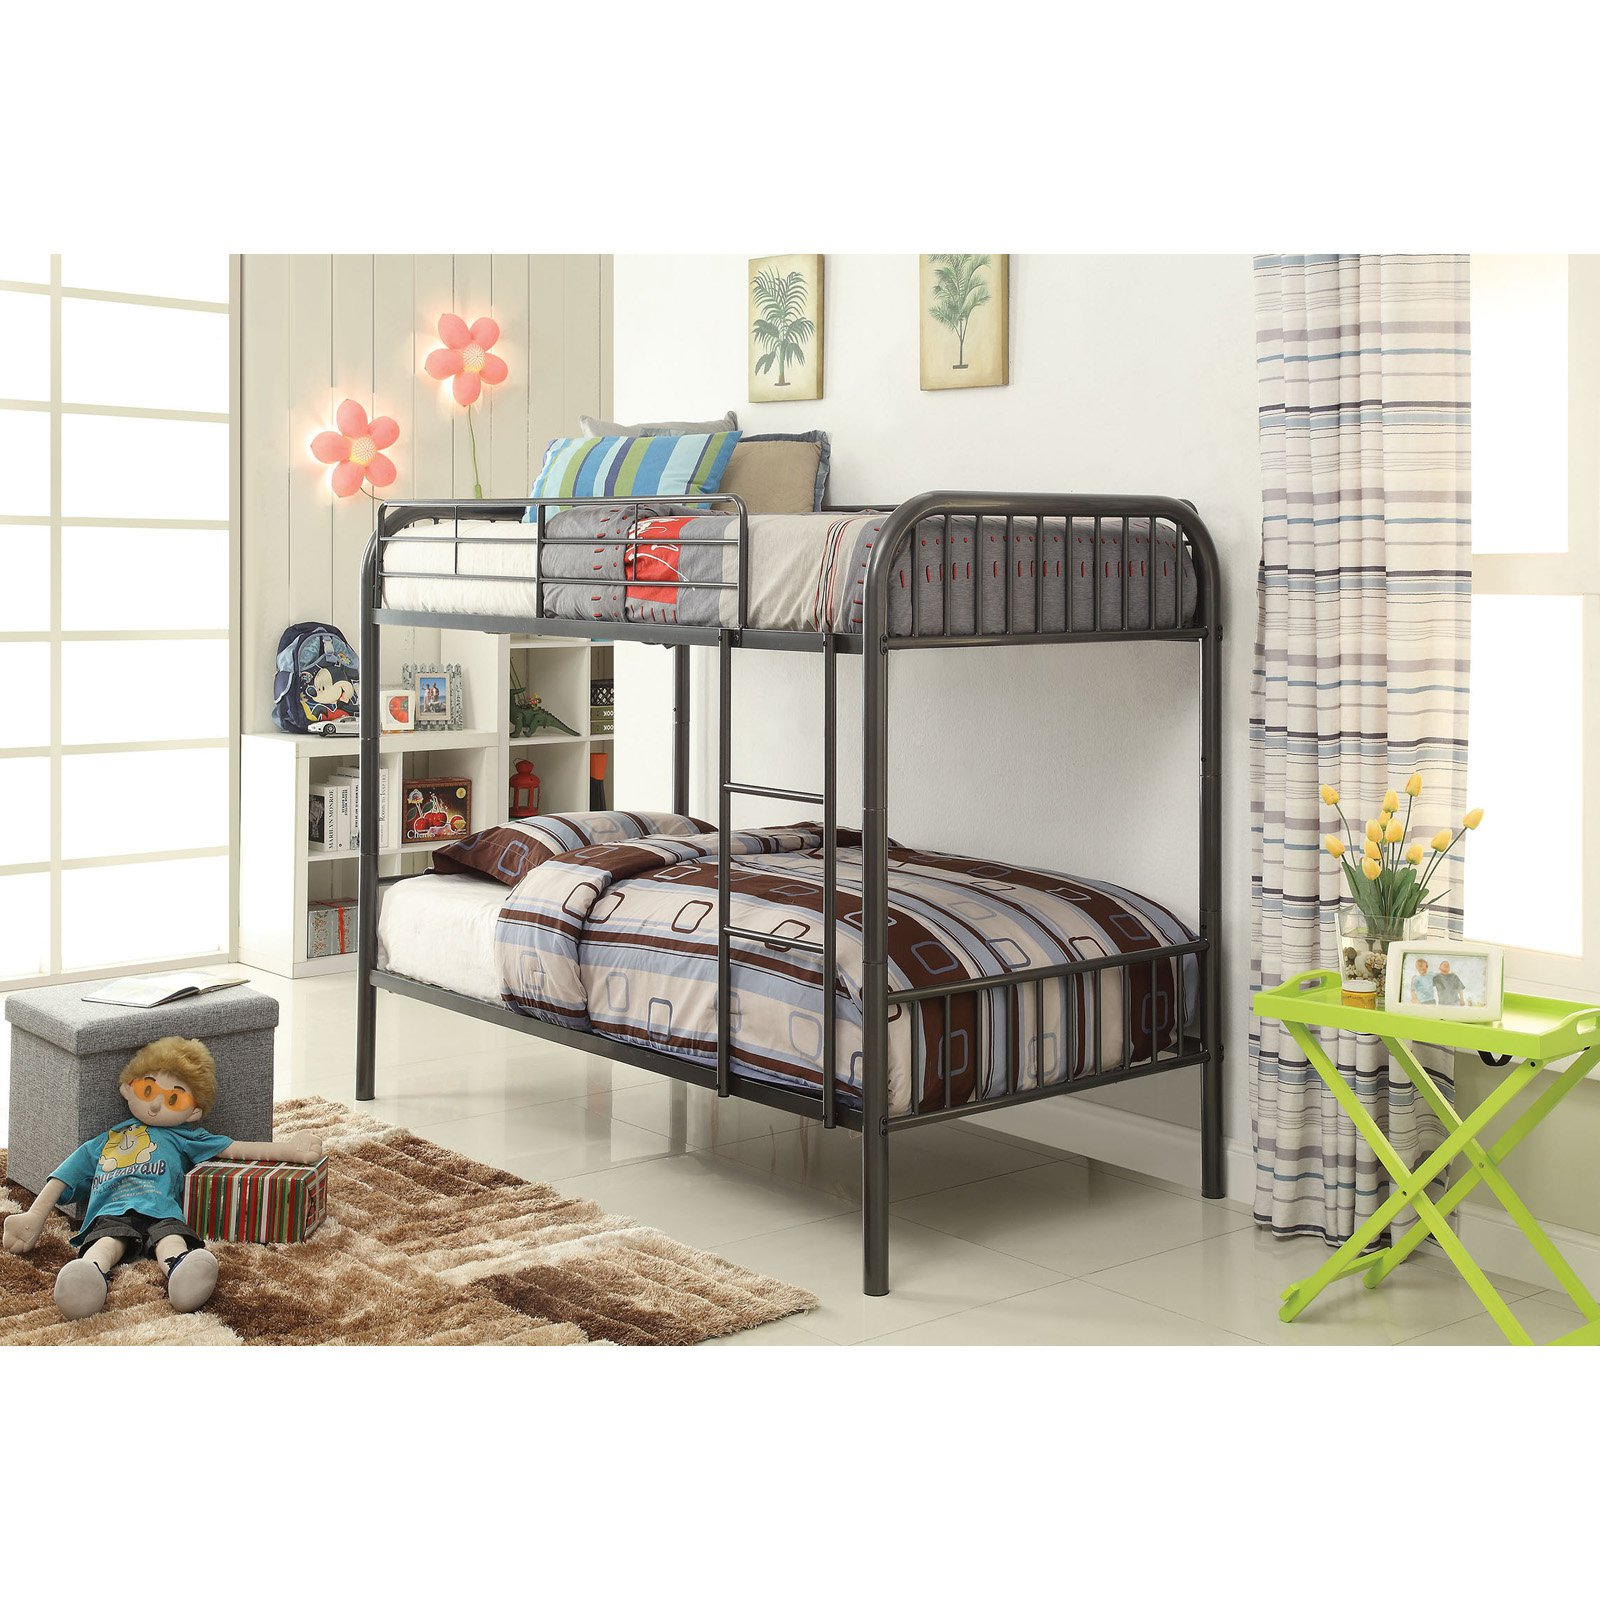 Acme Furniture Bristol Twin over Twin Bunk Bed